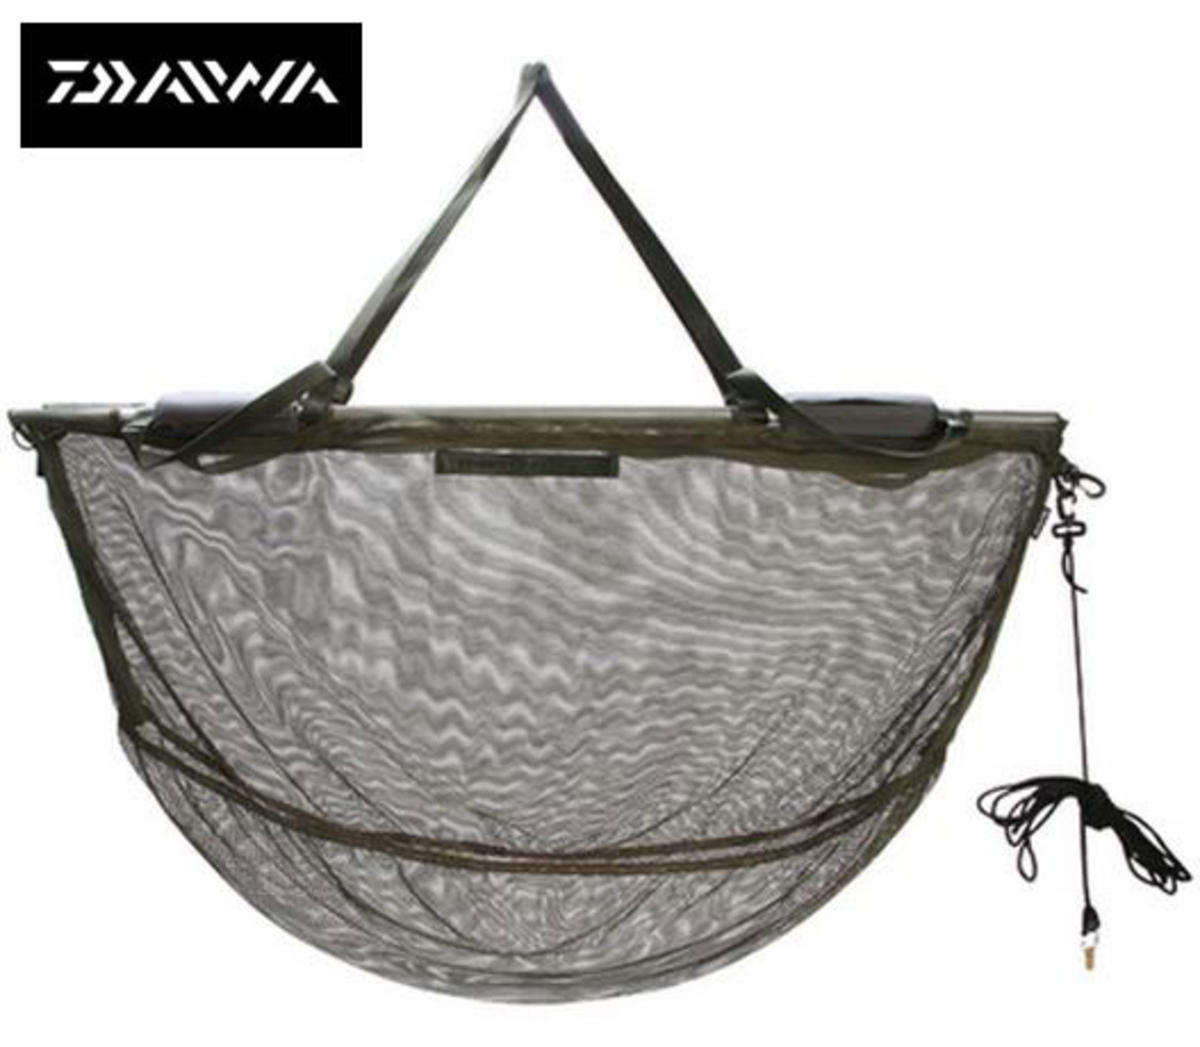 New Daiwa Infinity Deluxe Weigh Sling - IDWS1